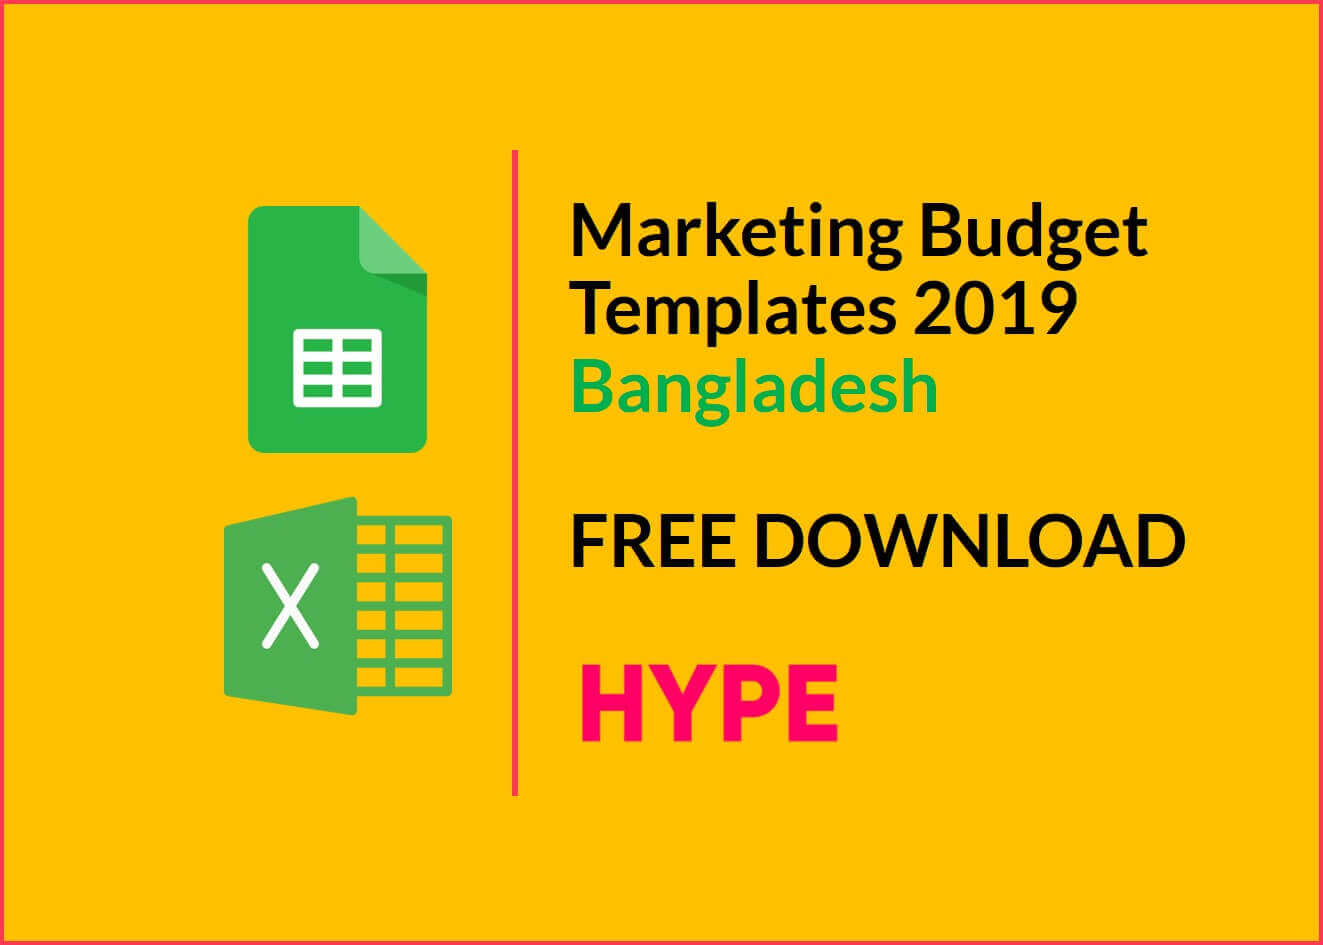 Marketing Budget Templates Bangladesh 2019